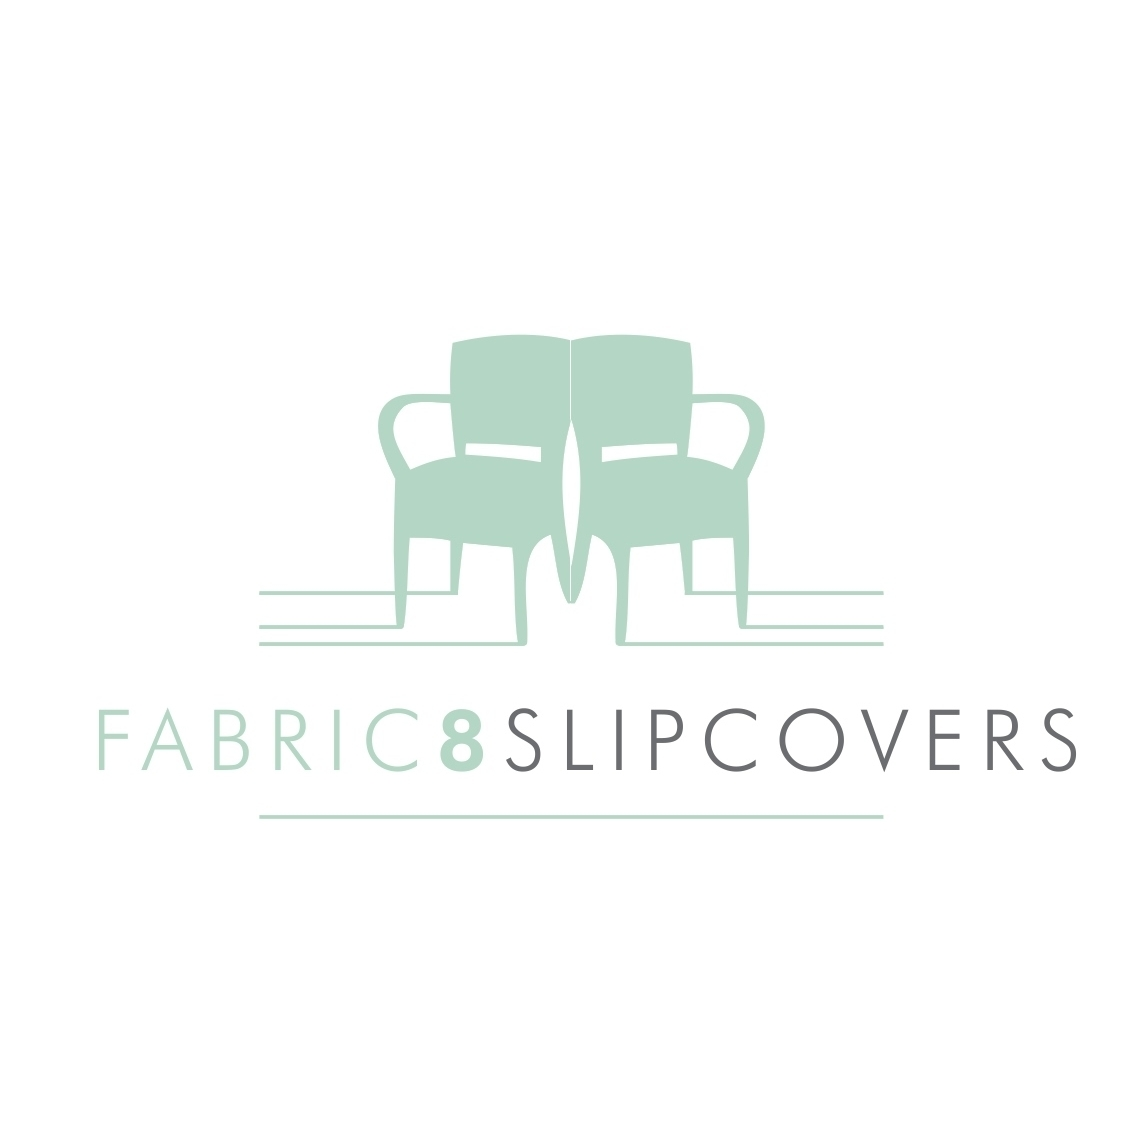 Fabric 8 Slipcovers 11 Photos Customer Furniture